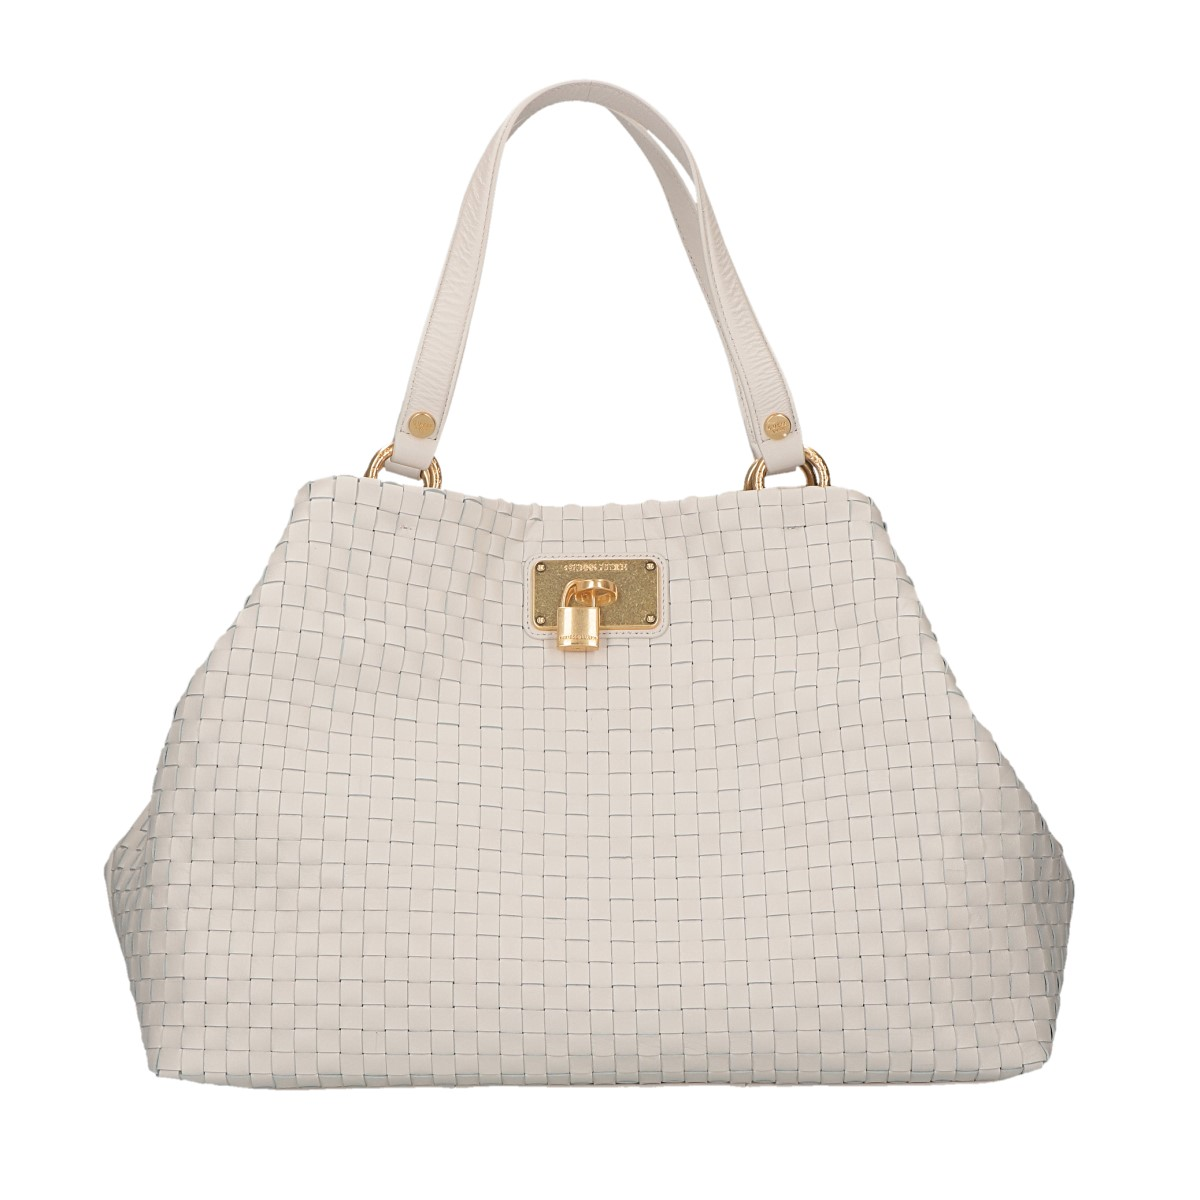 Guess Handbag M Luxe braided leather Beige IVO